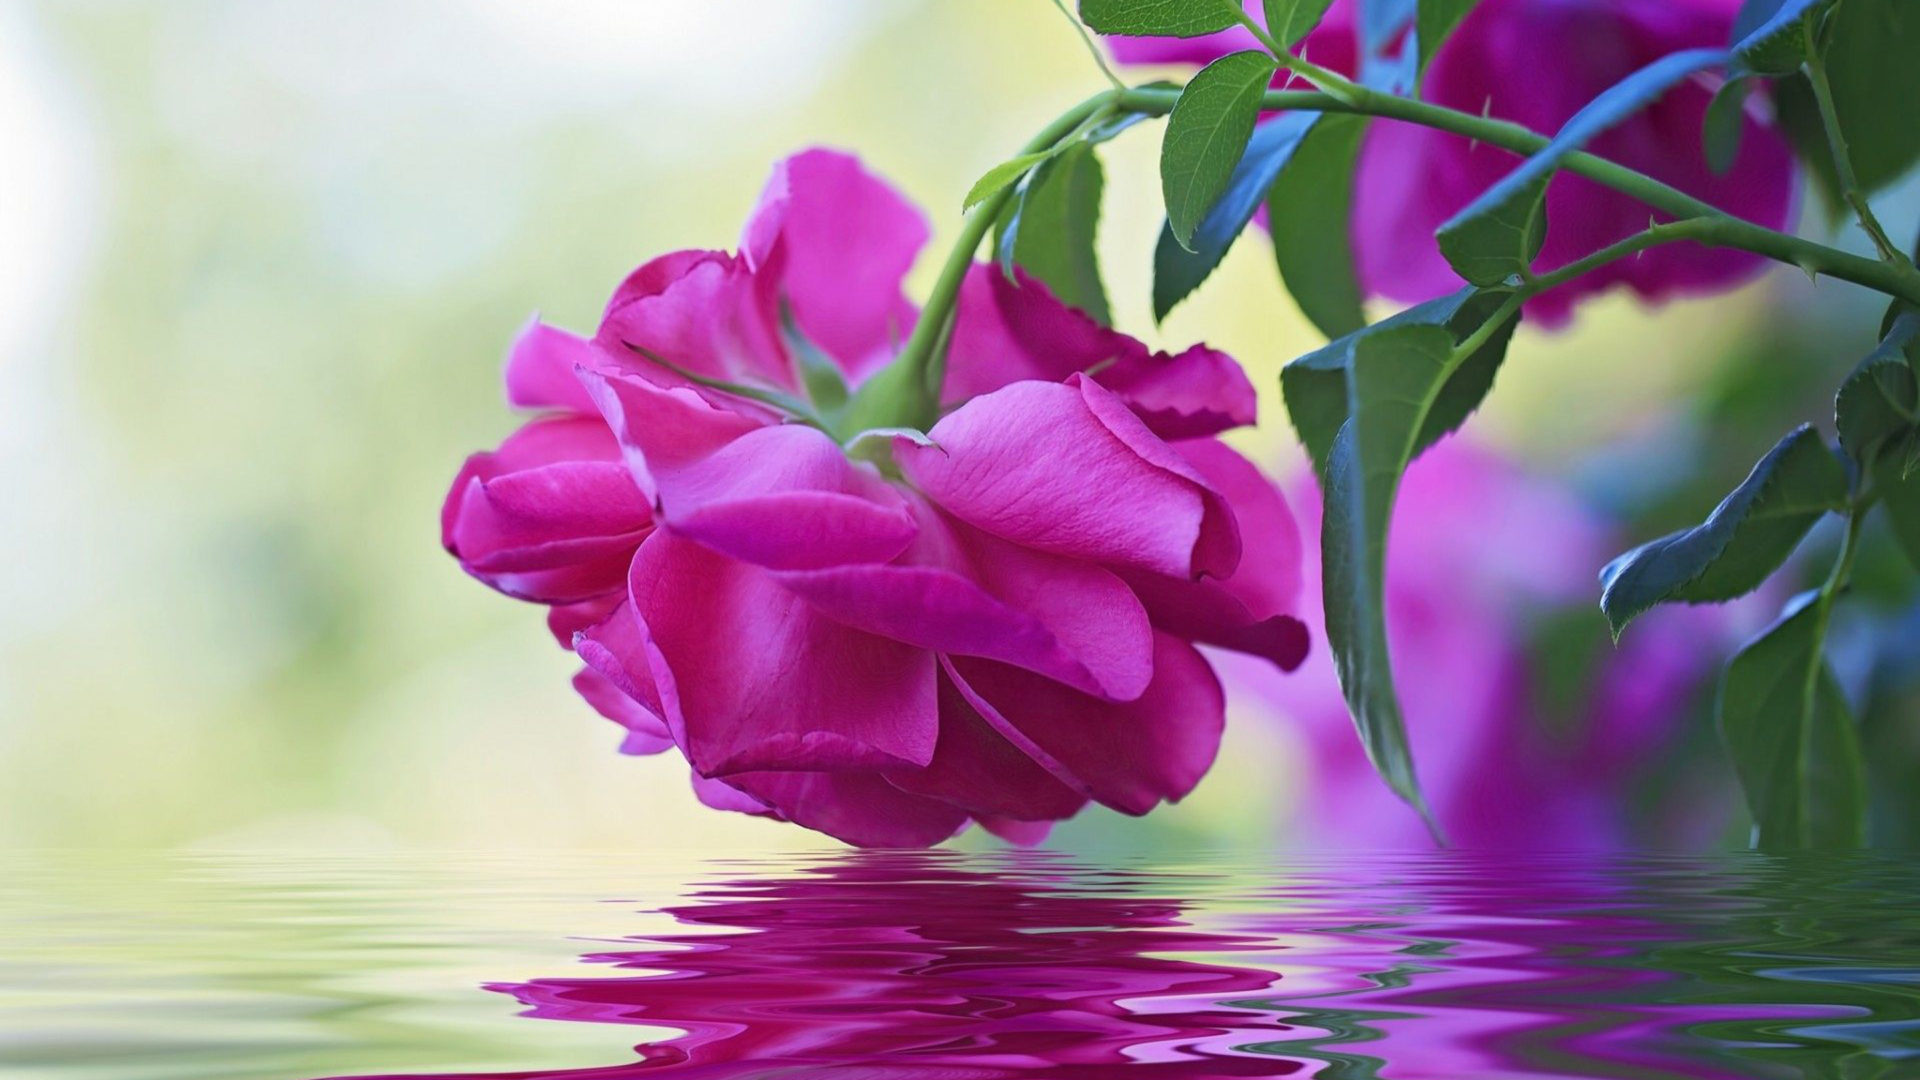 Hd Rose Wallpaper For Pc Beautiful Flower Pink Rose Green Leaves Reflection In